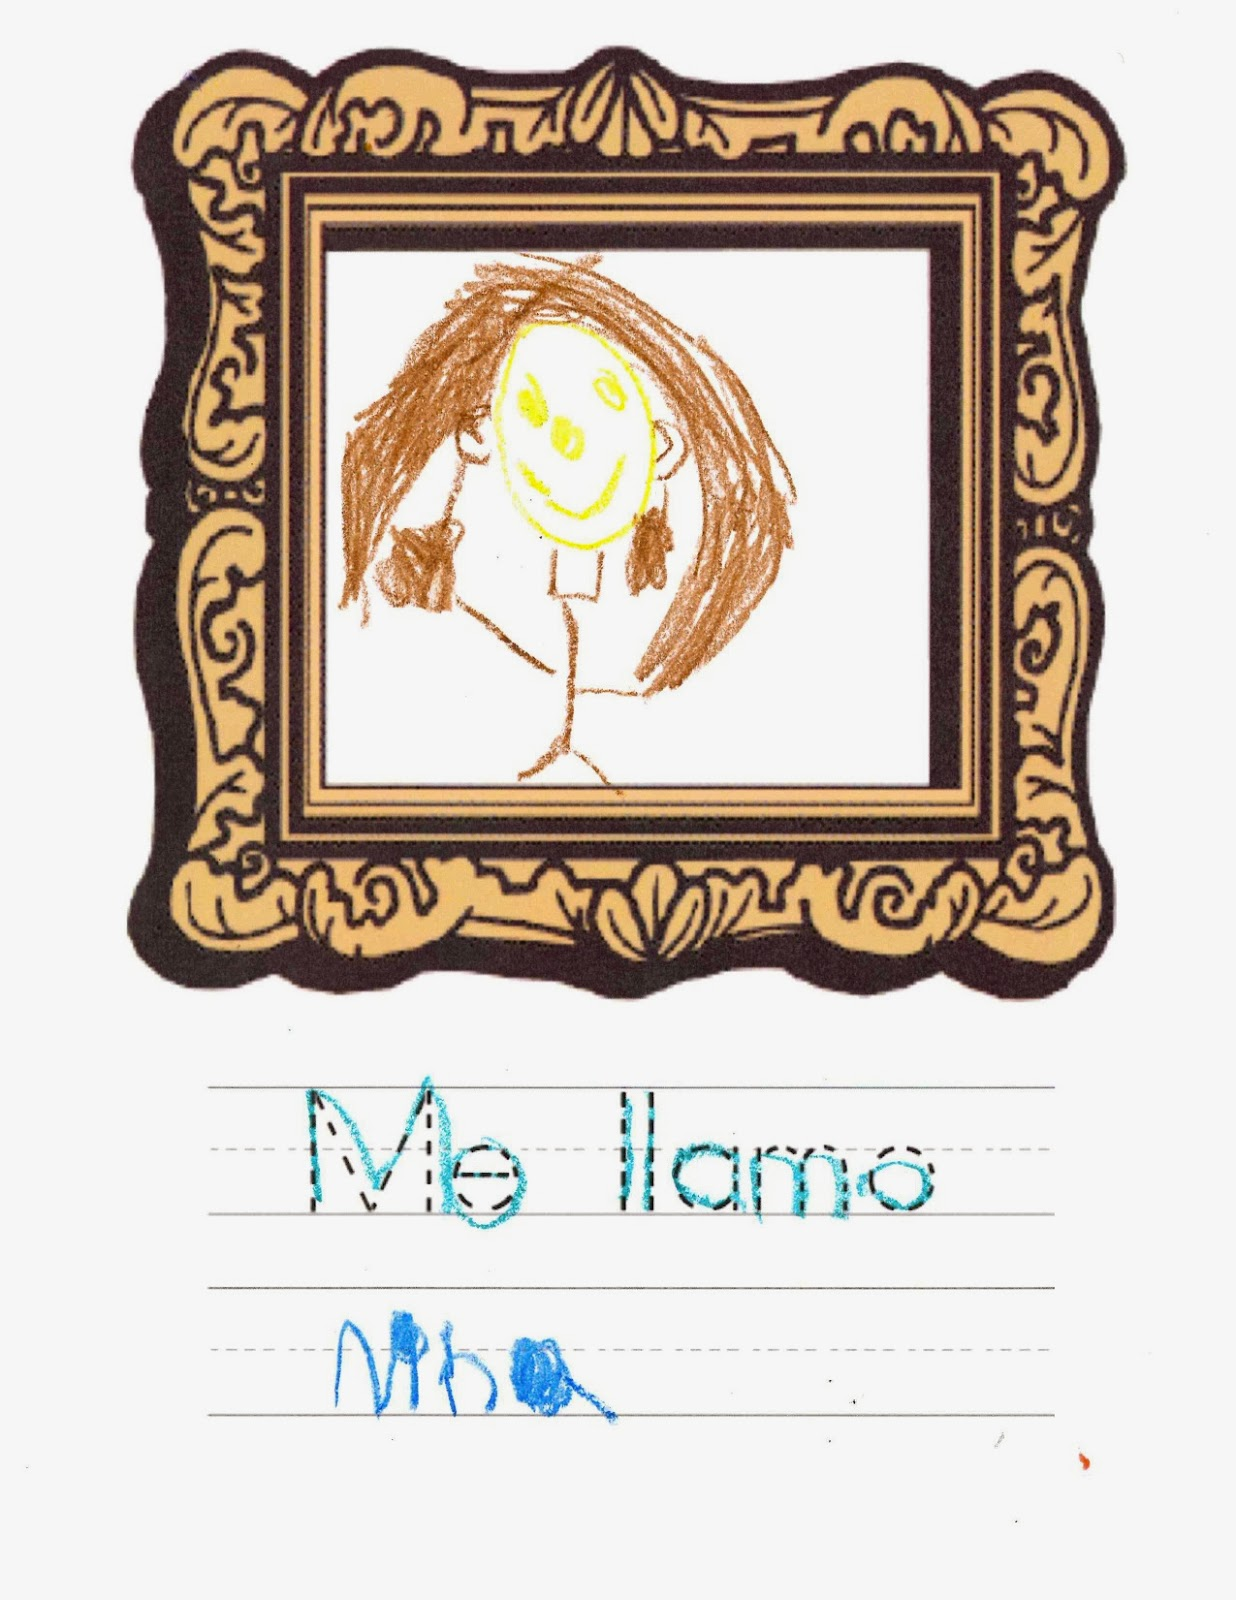 My Name Is Me Llamo Lesson